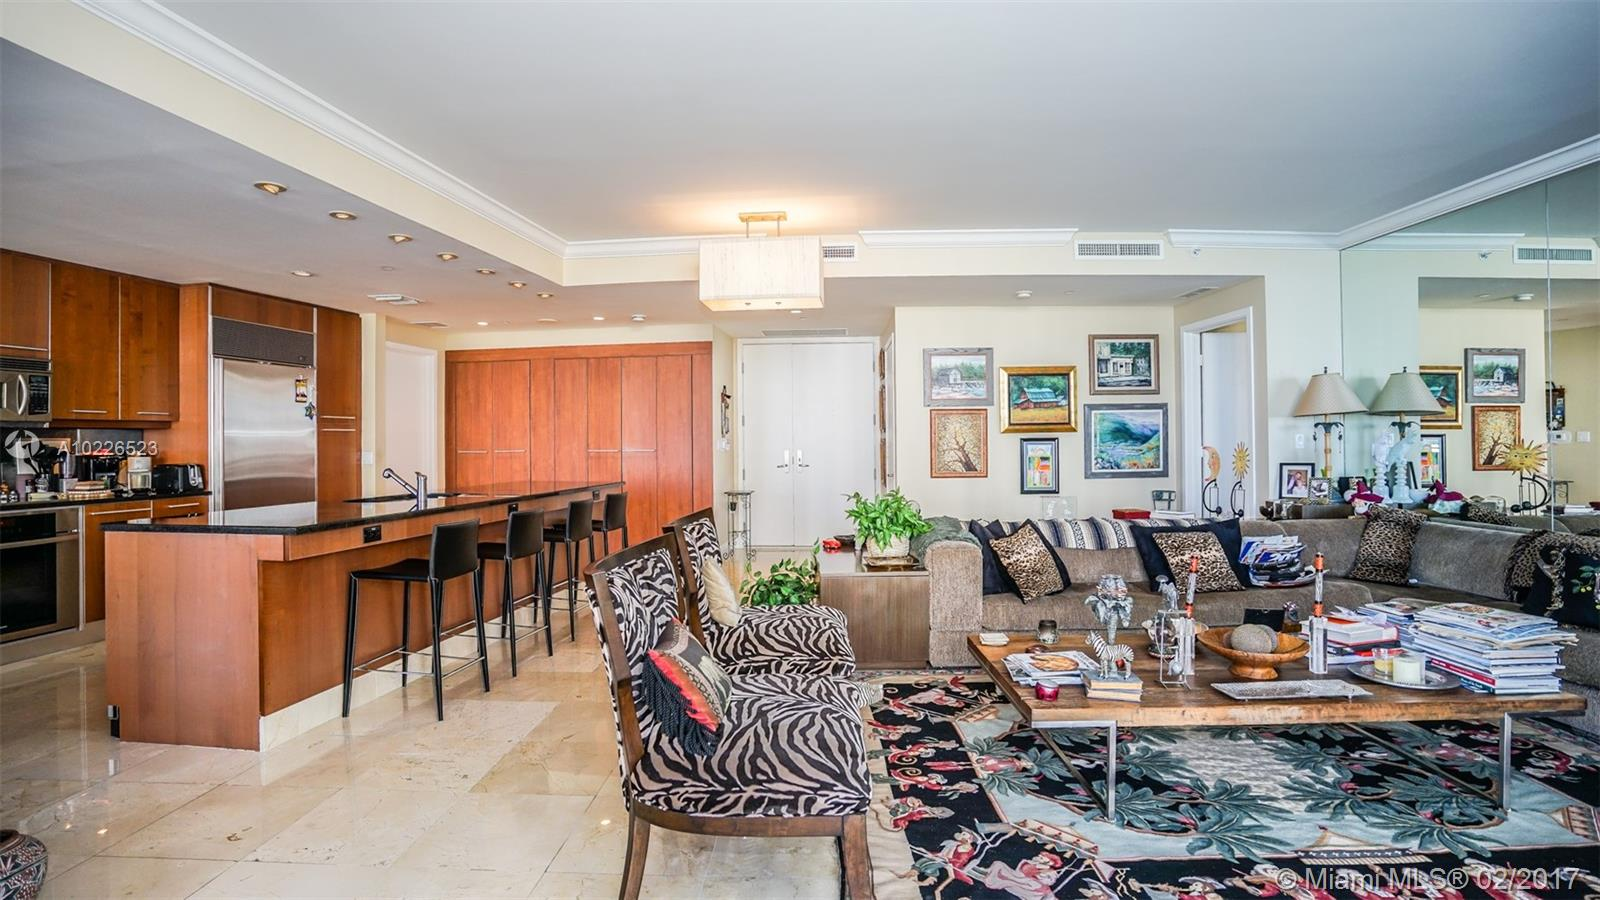 901 Brickell key blvd-707 miami--fl-33131-a10226523-Pic06